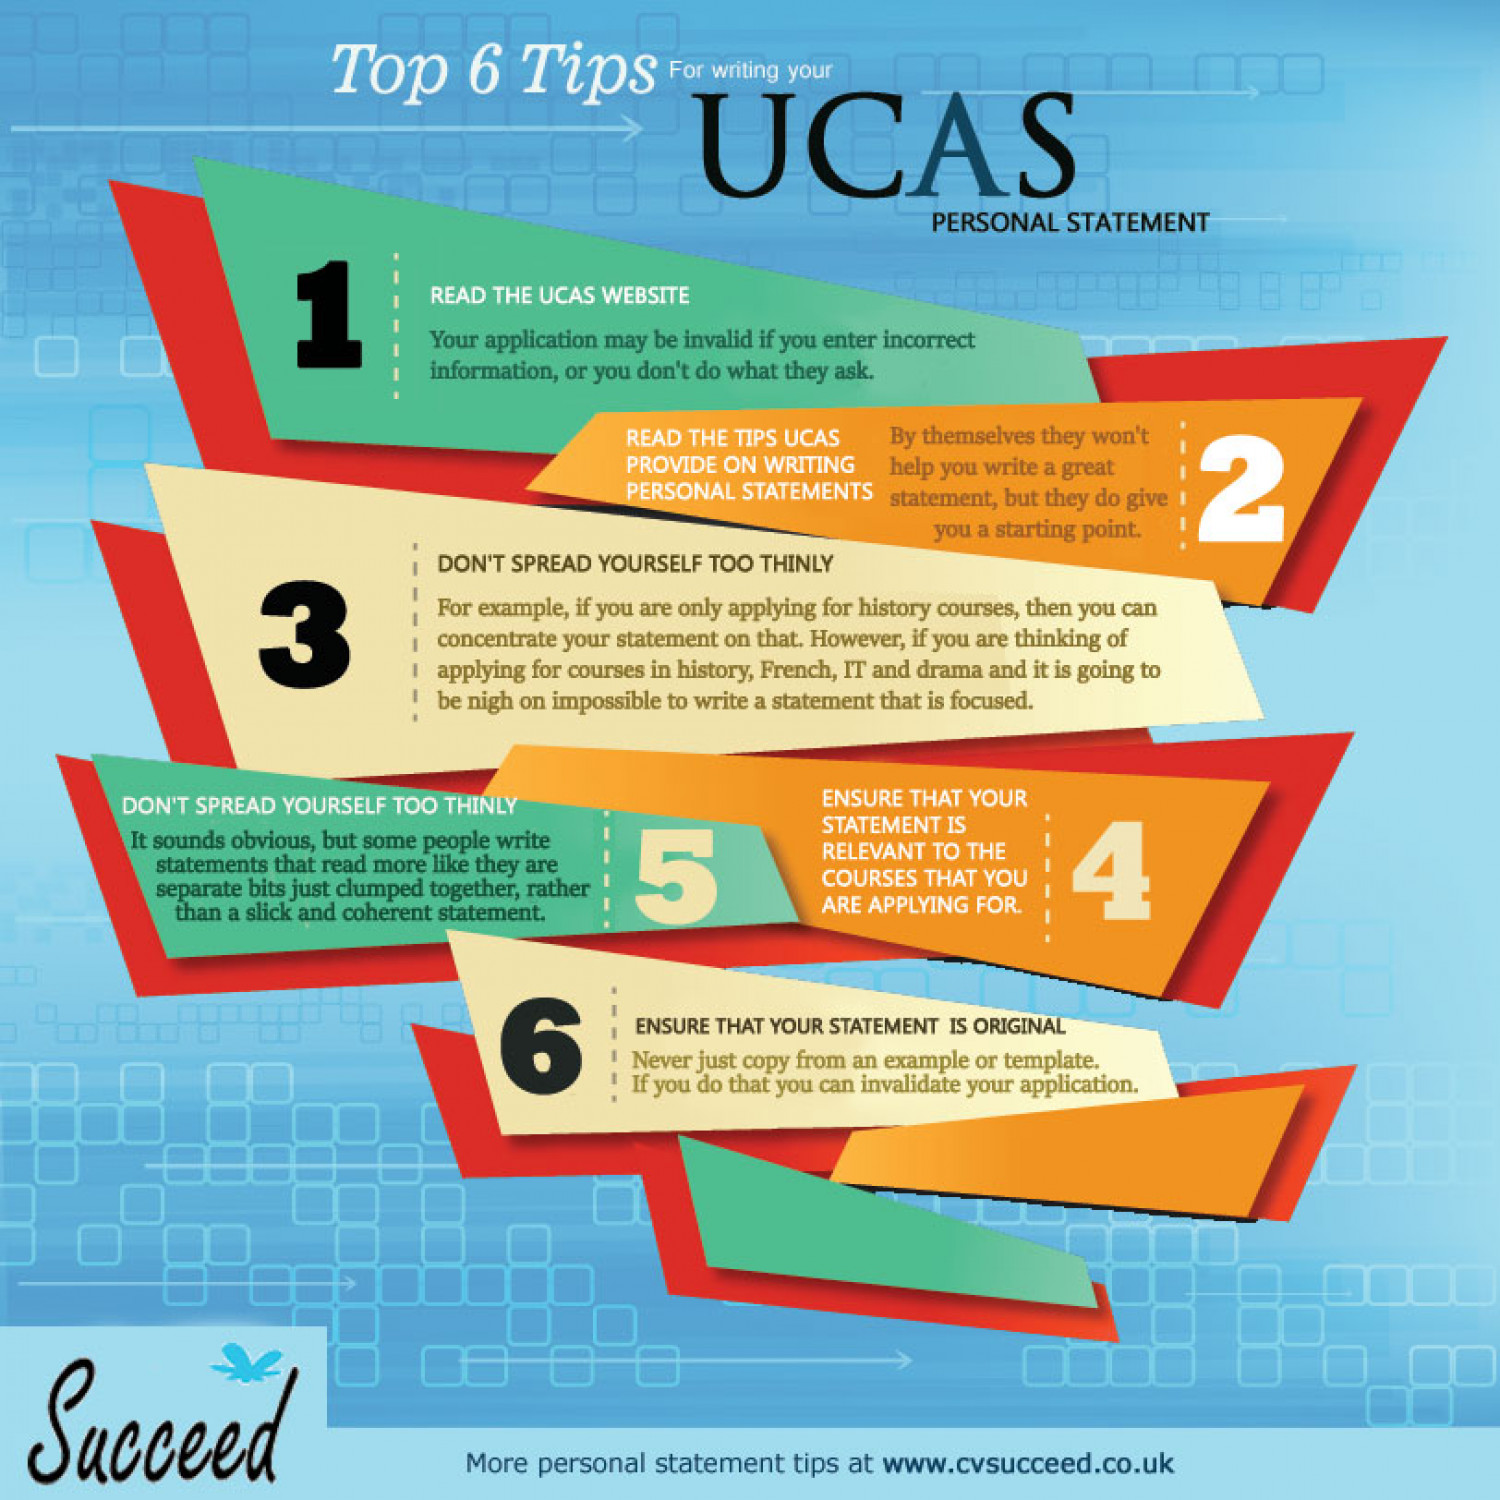 Top 6 UCAS Personal Statement Writing Tips | Visual.ly